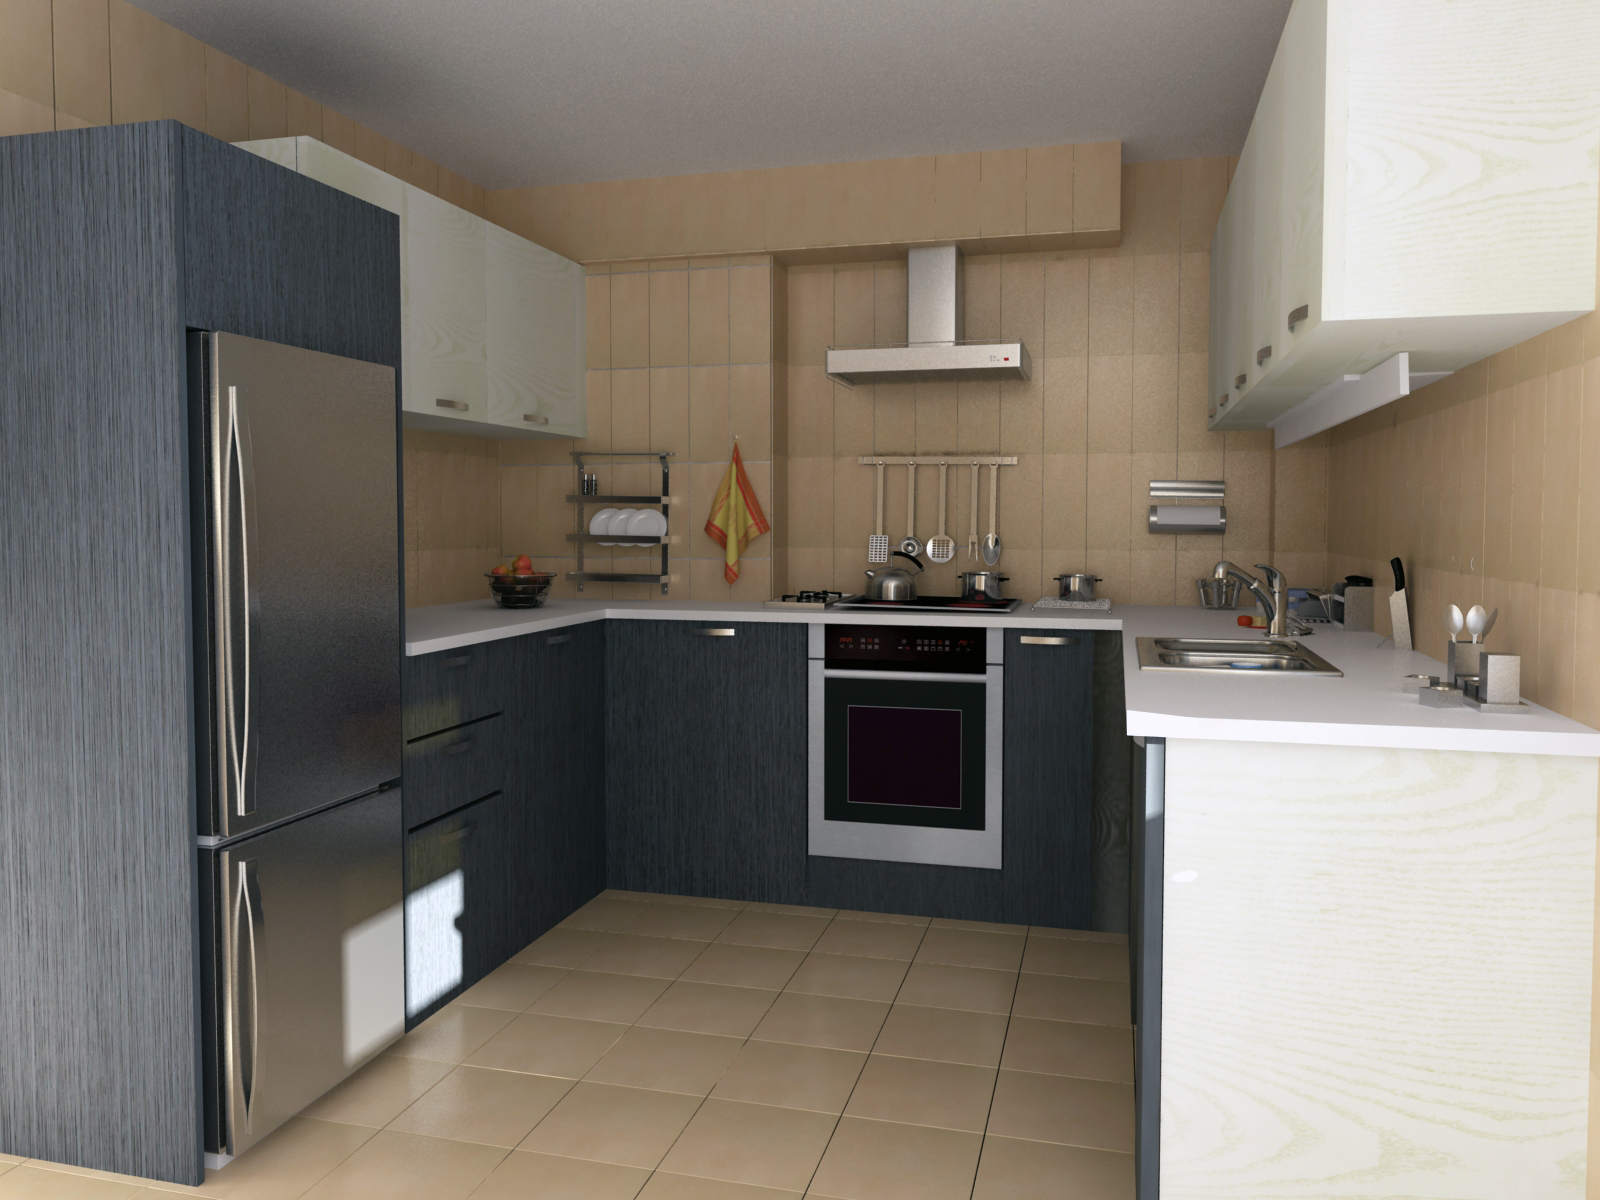 kitchen 3D / environment